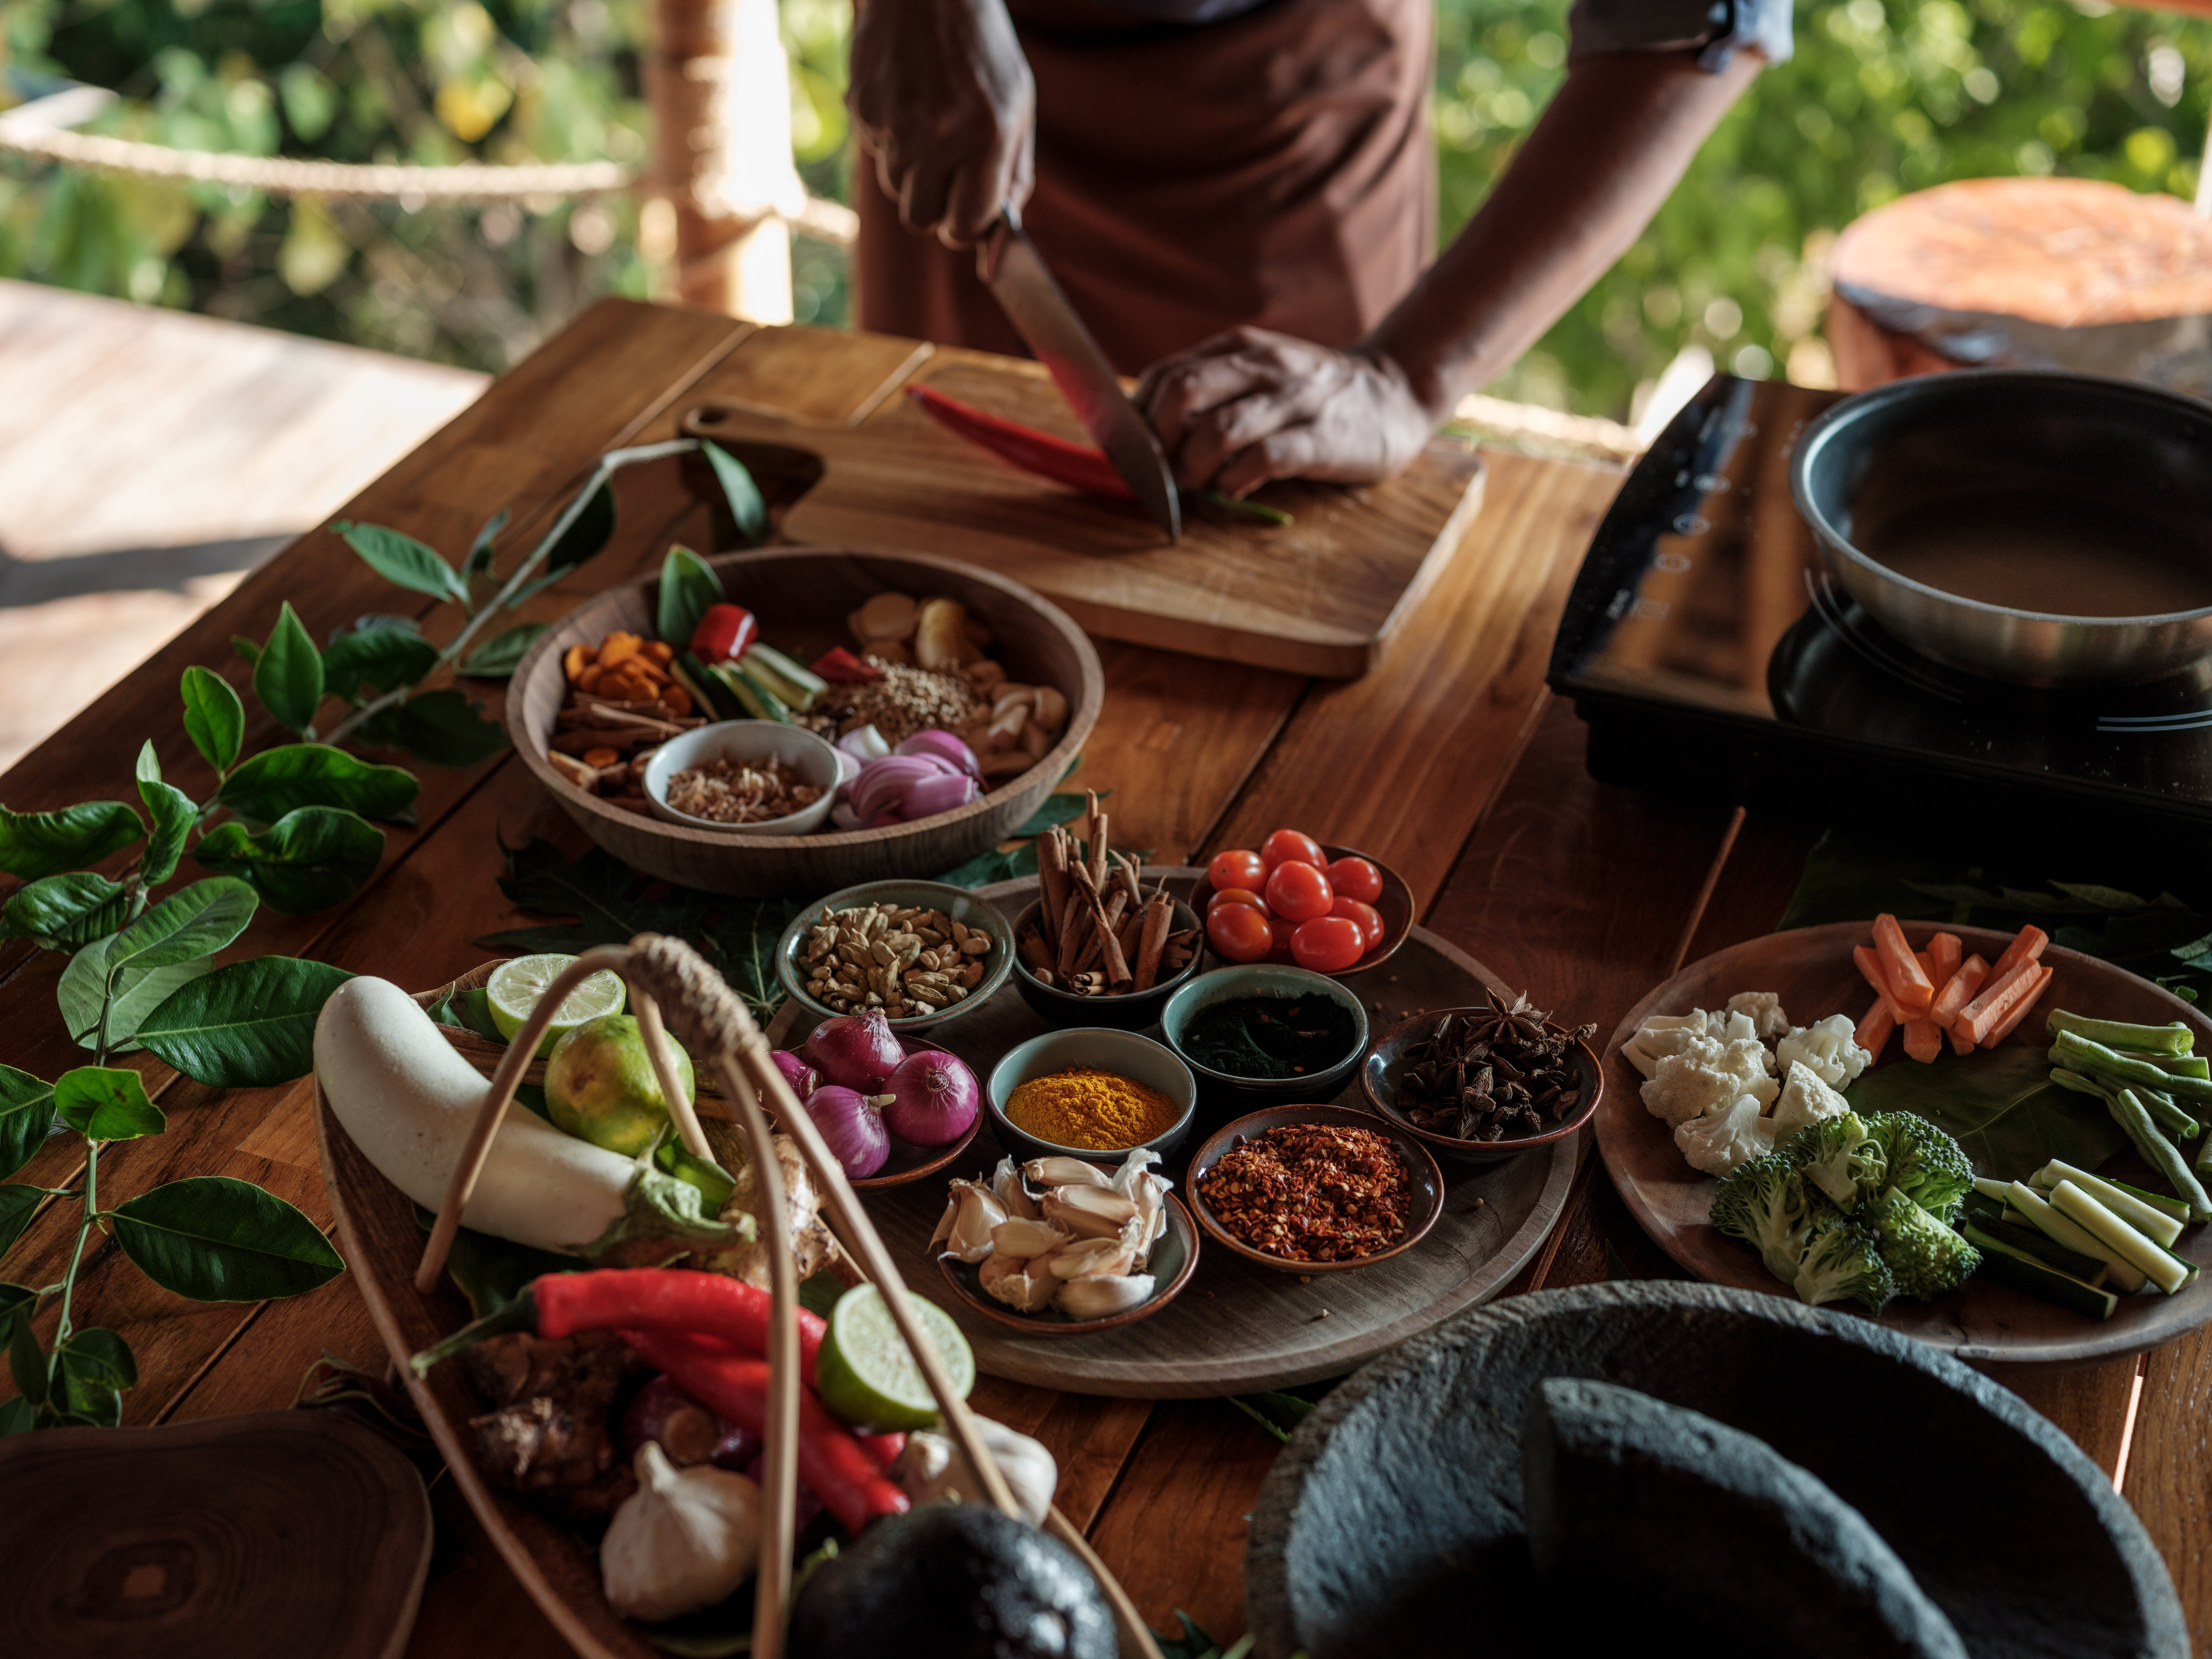 chef_teaching_cutting_red_chilli_fresh_ingredients_prepared_pestle_mortar_on_table_cooking_class-1